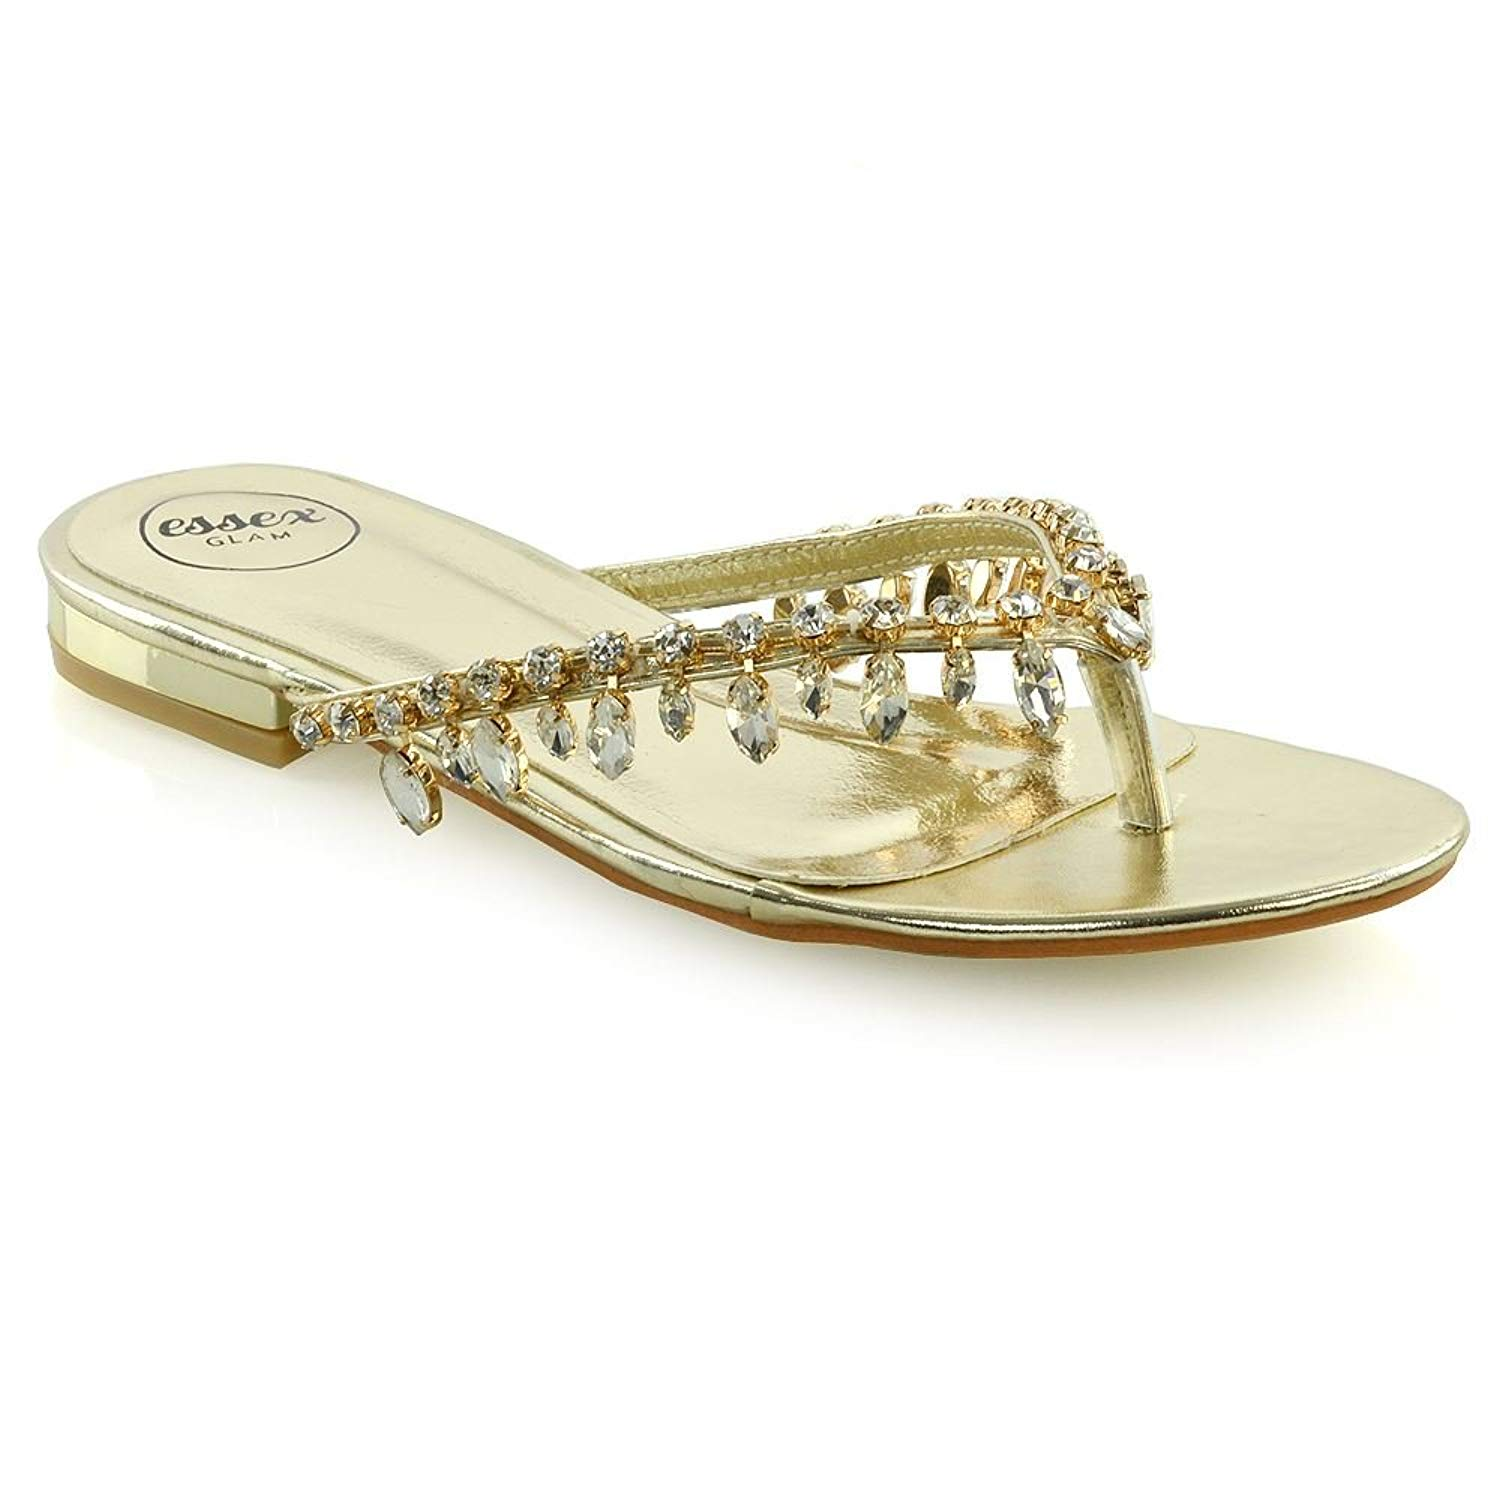 7387cd67cbbe2b Get Quotations · ESSEX GLAM Womens Sparkly Sandals Ladies Toe Post Diamante  Holiday Flip Flops